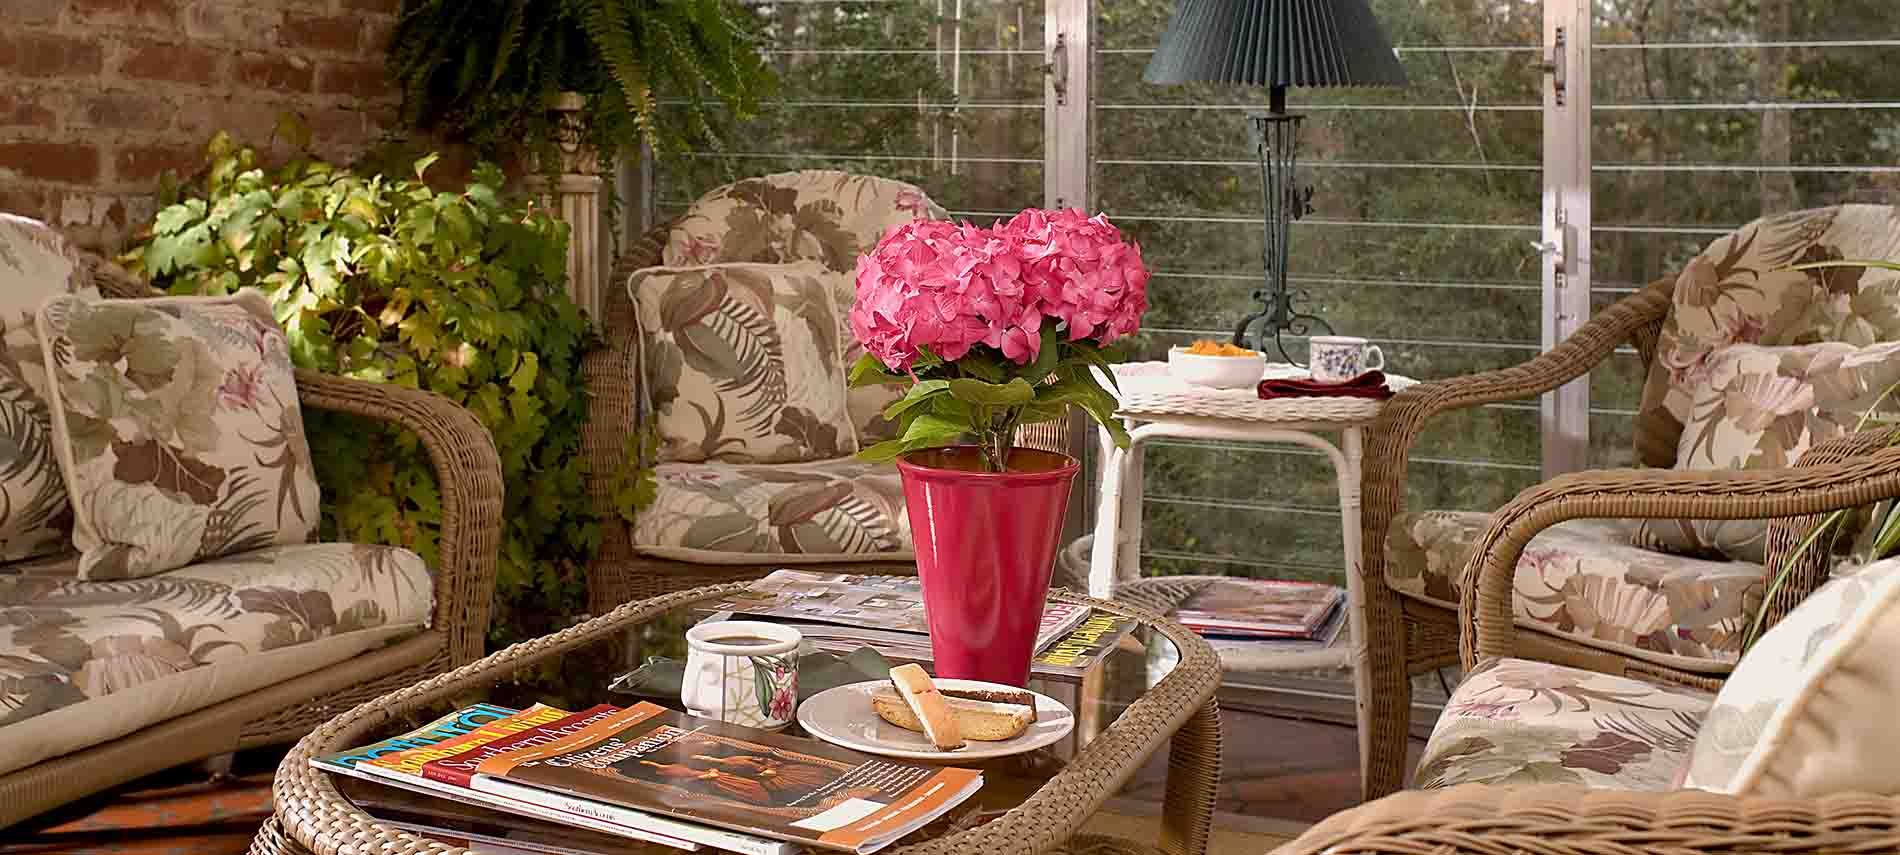 pink potted hydrangea plant on wicker and glass table with magazines and plate of biscotti